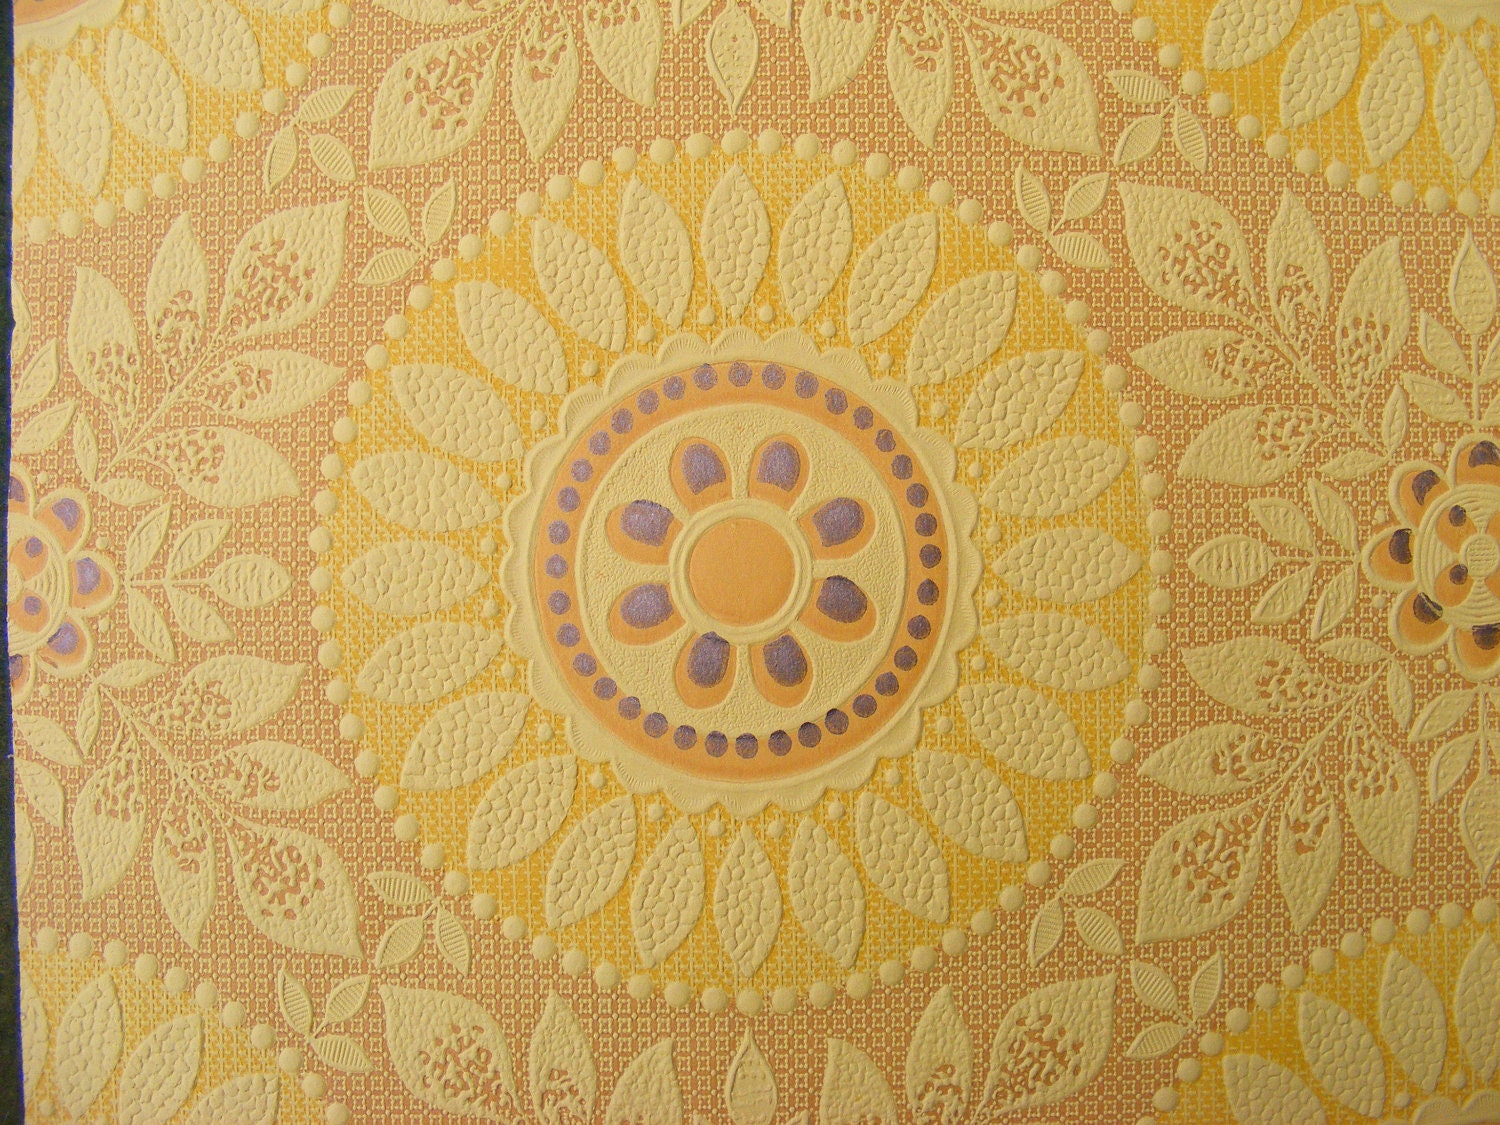 Vintage Wallpaper YELLOW Sun Flower Embossed Textured Paper